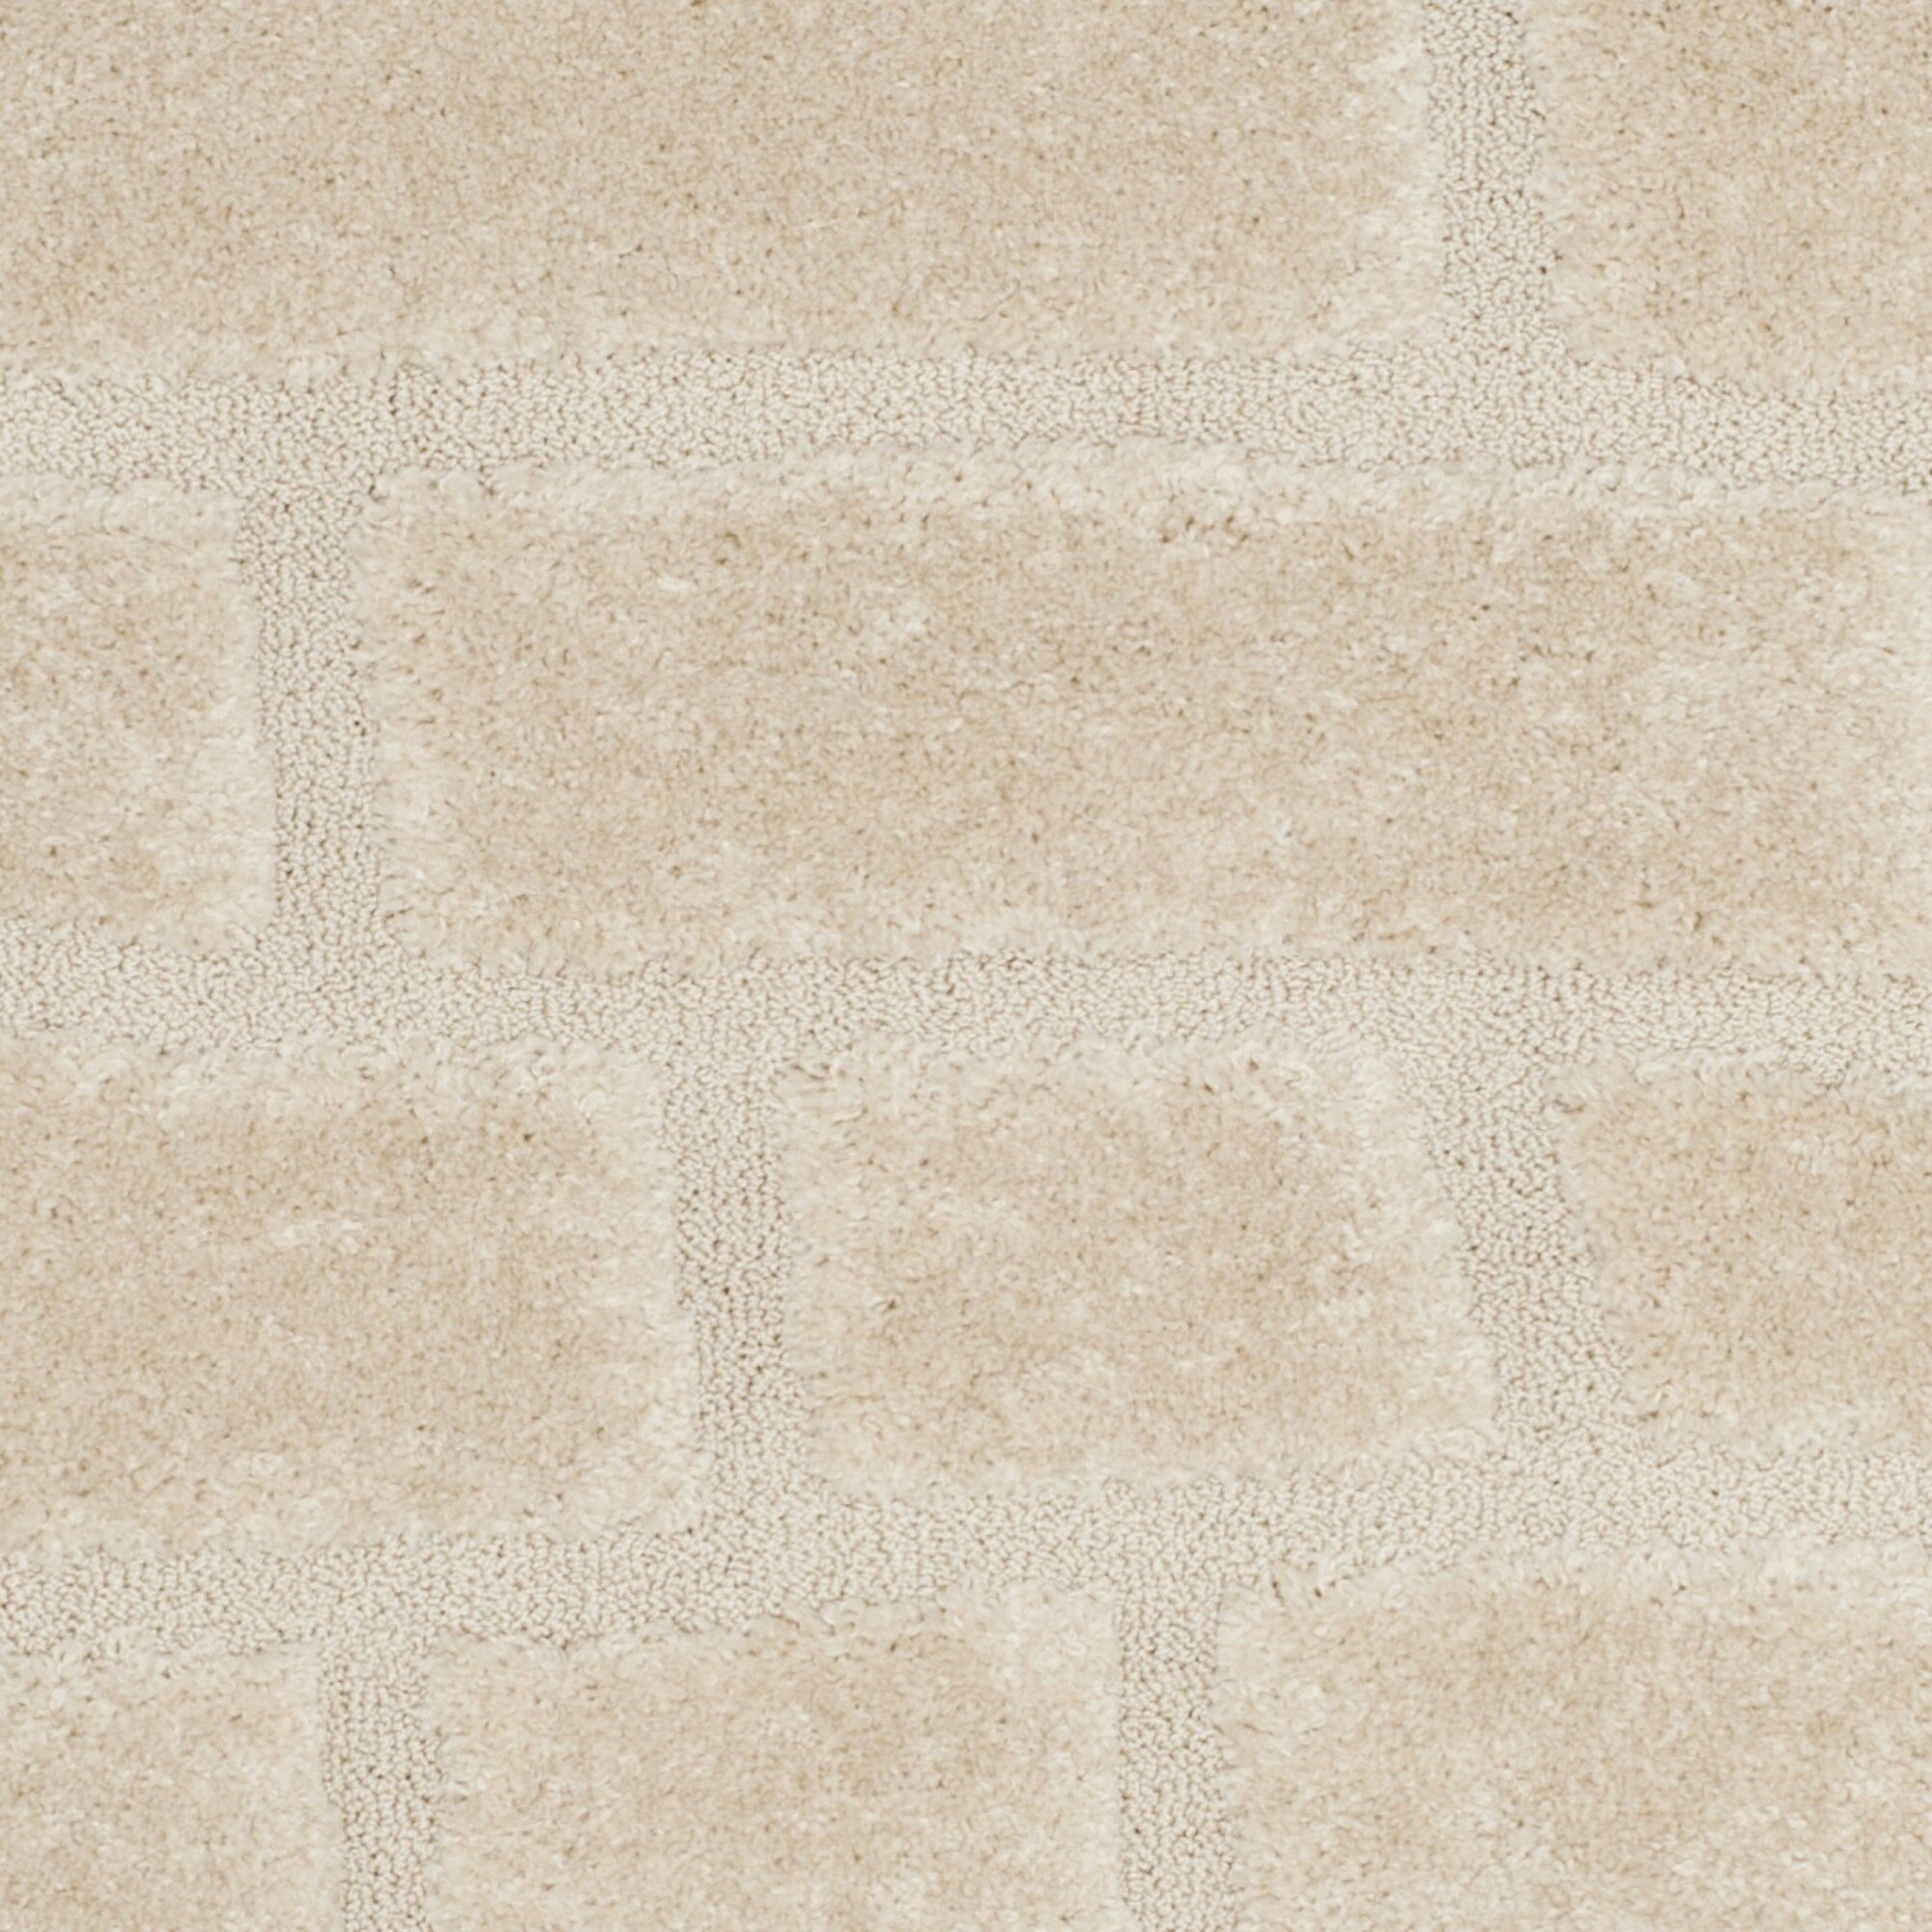 Eisley Cream Area Rug Rug Size: Square 6'7